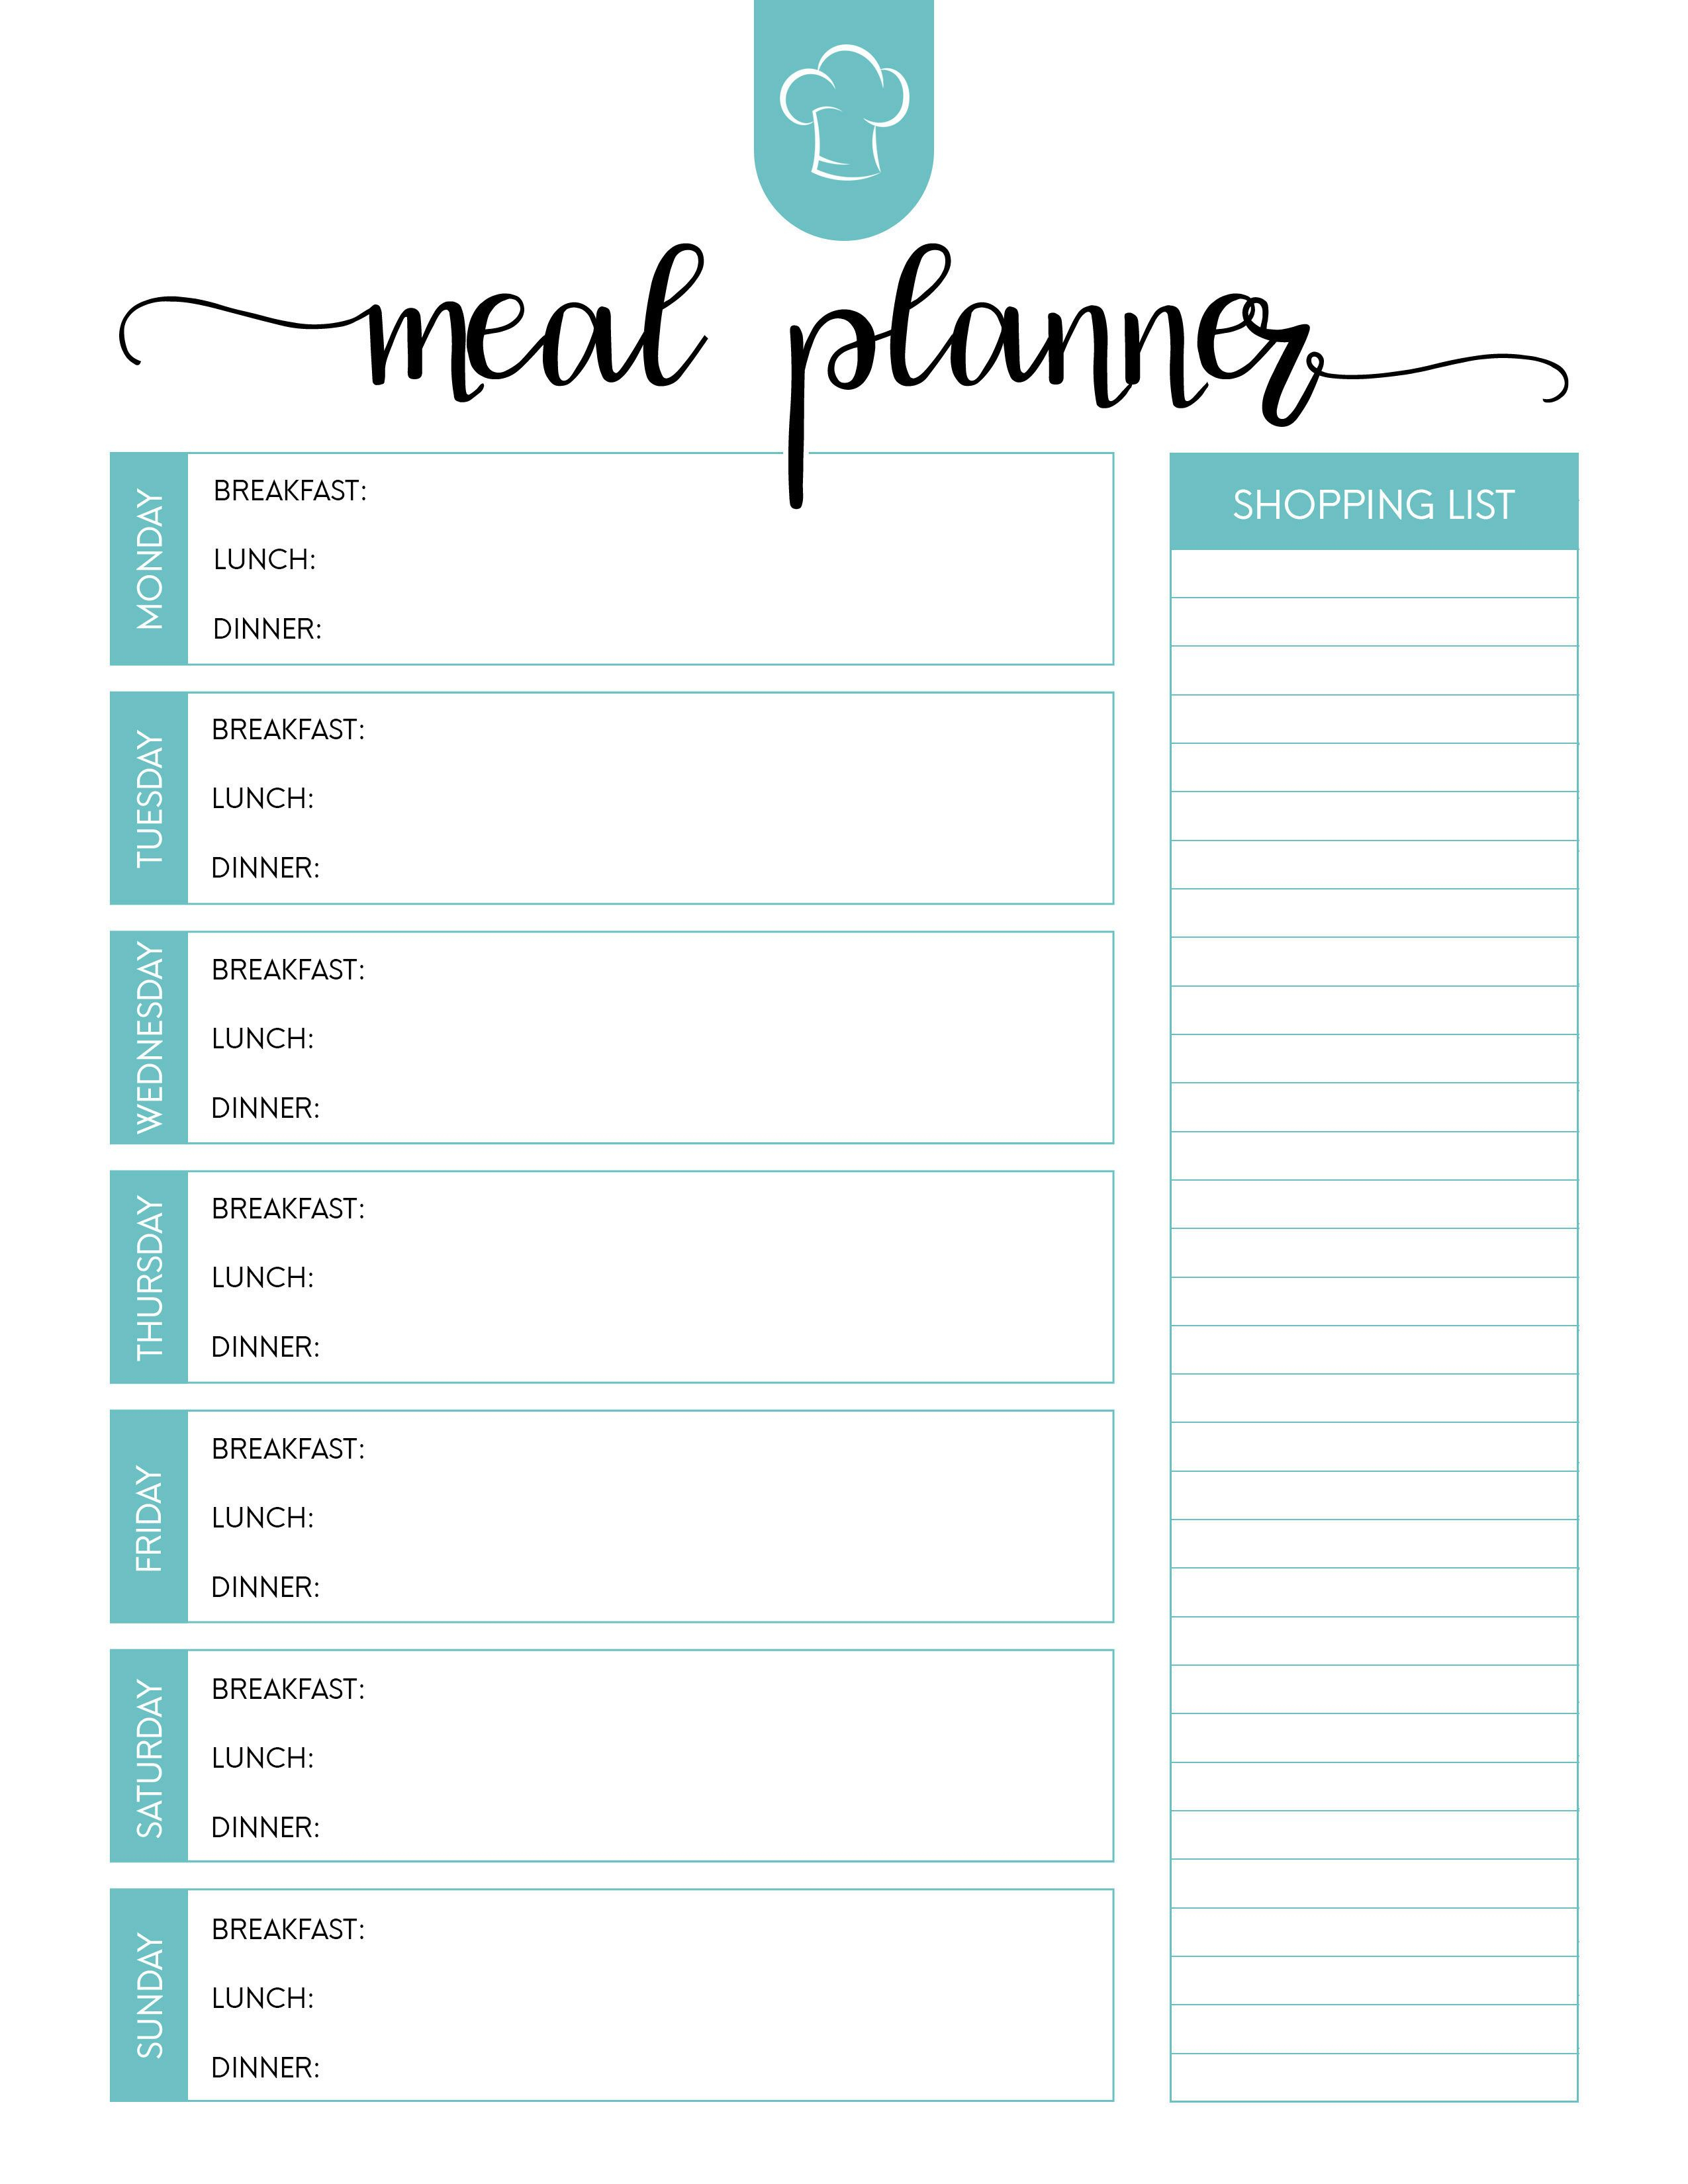 025 Template Ideas Free Menu Planner Meal Plan Awesome Within Meal Plan Template Word